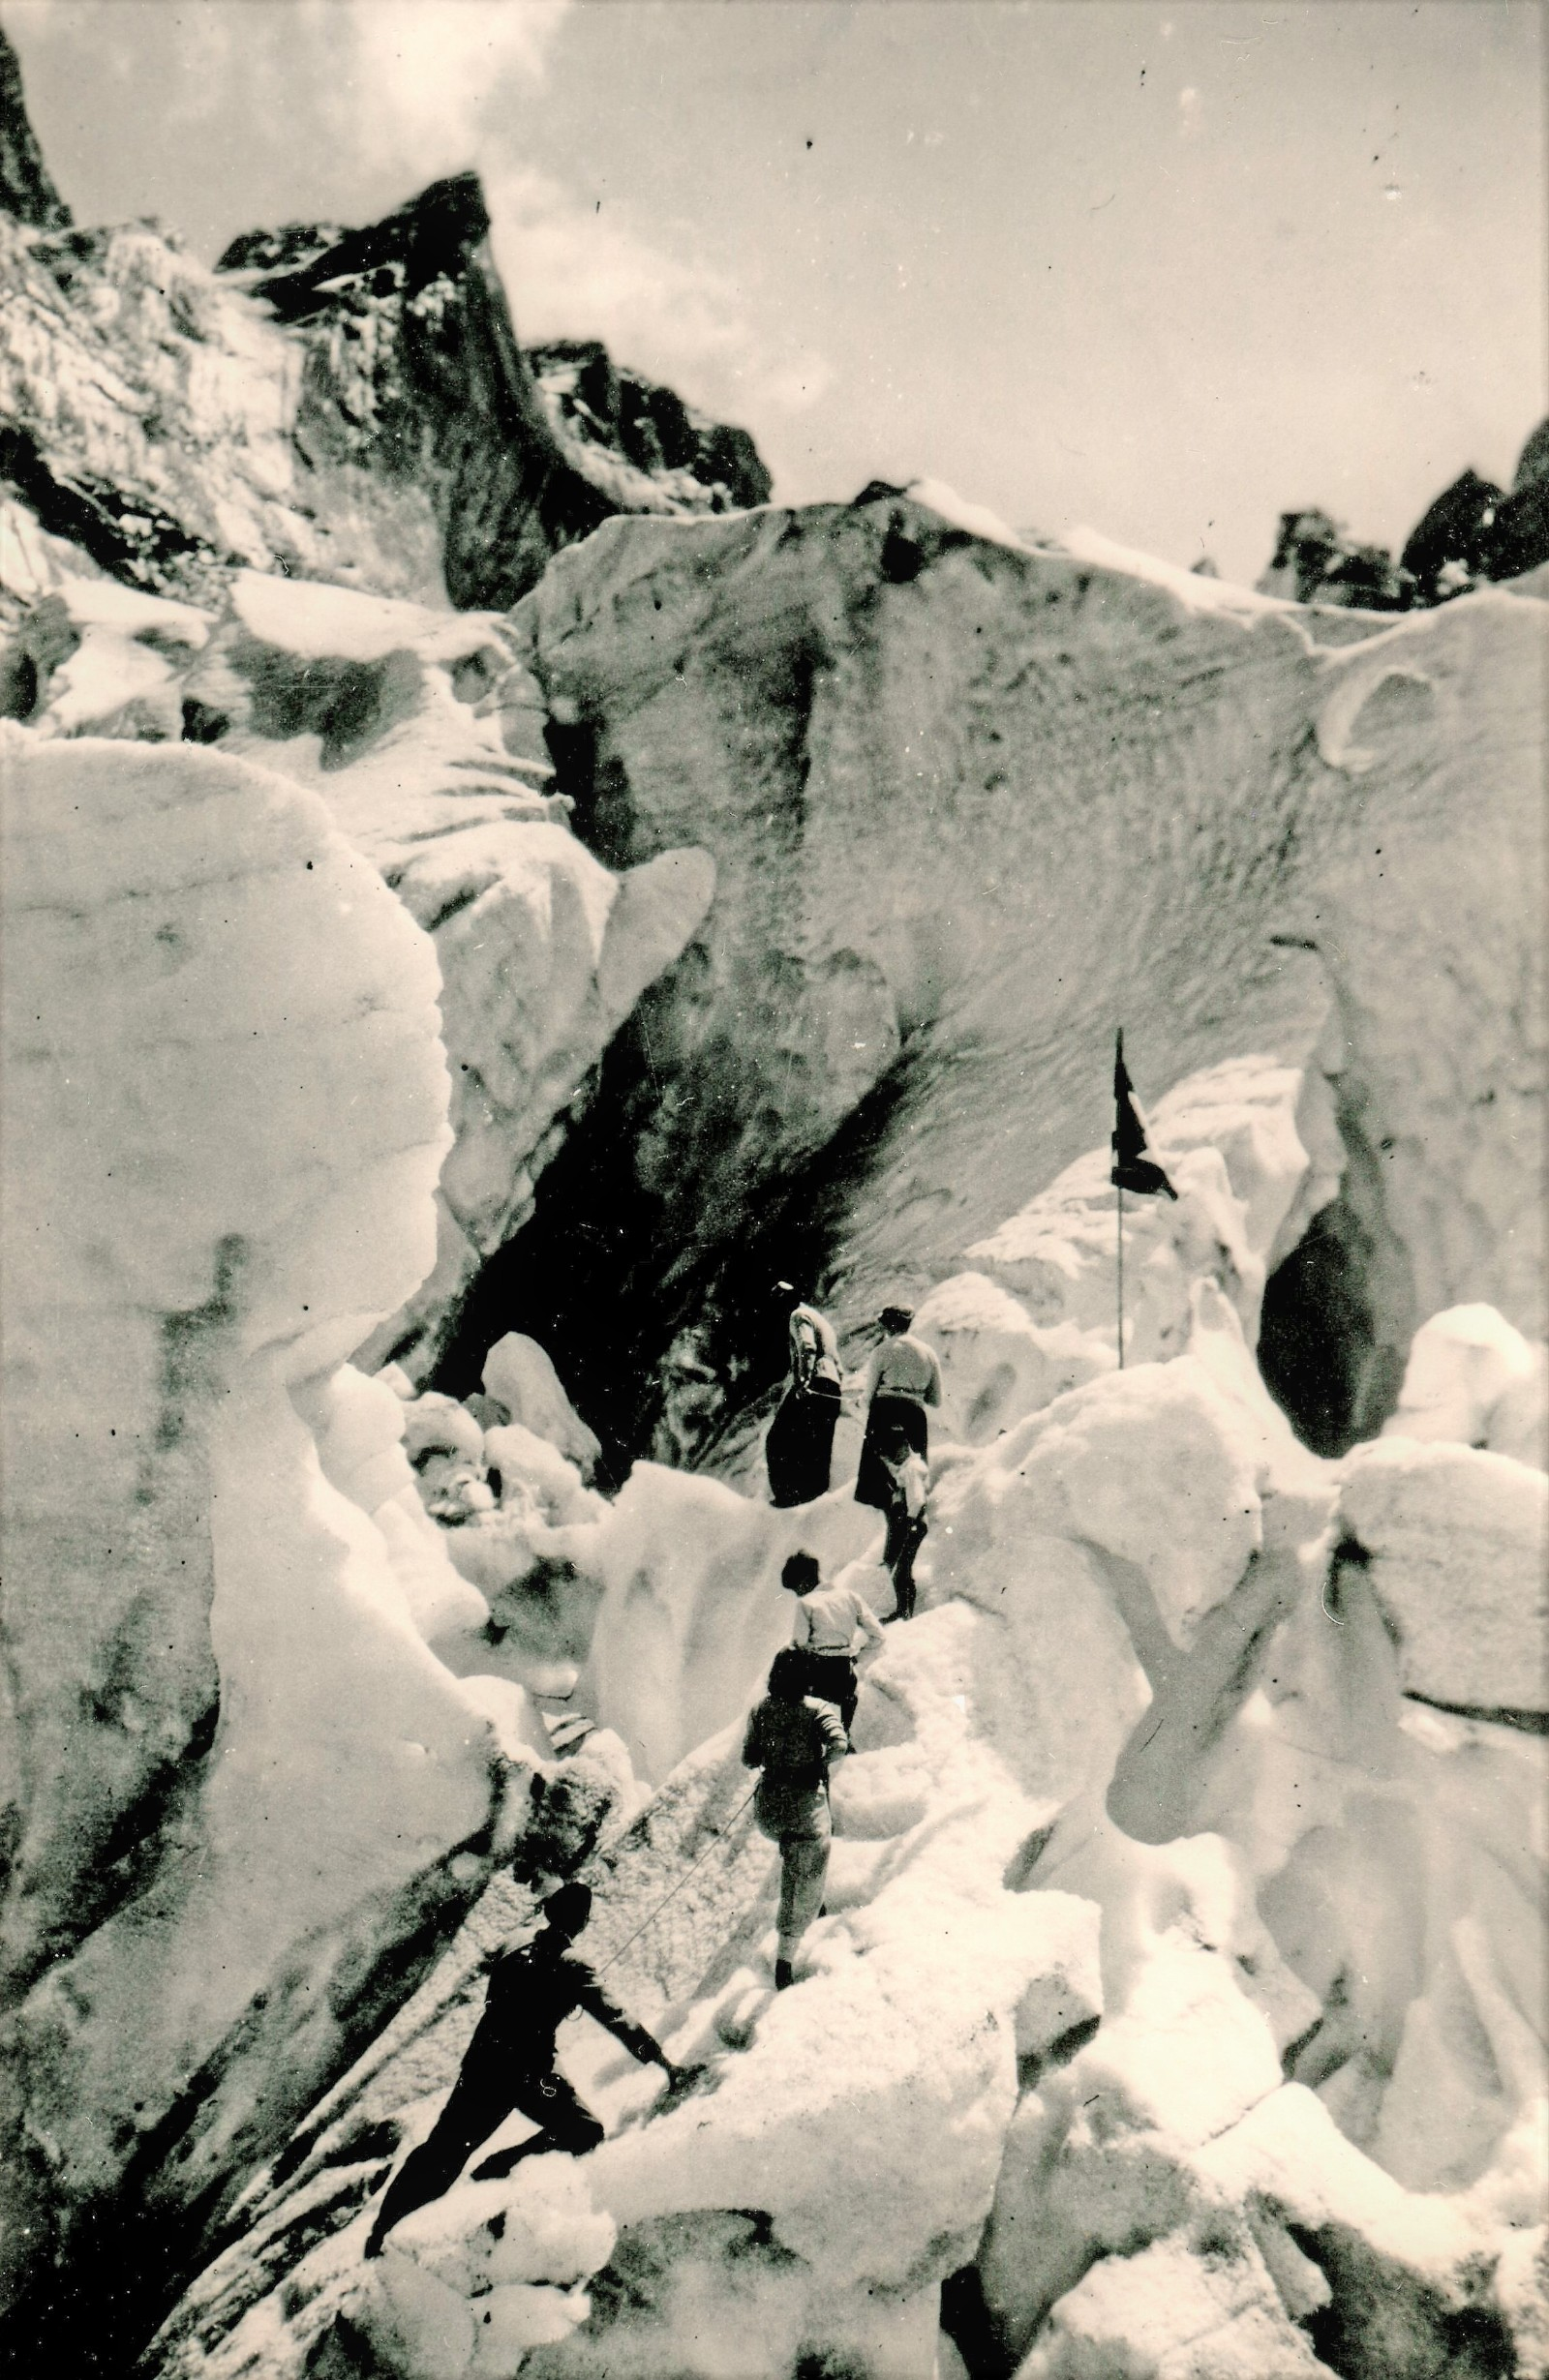 A black and white photograph showing a group of six people walking up the steep sides of a glacier, tethered together by rope.